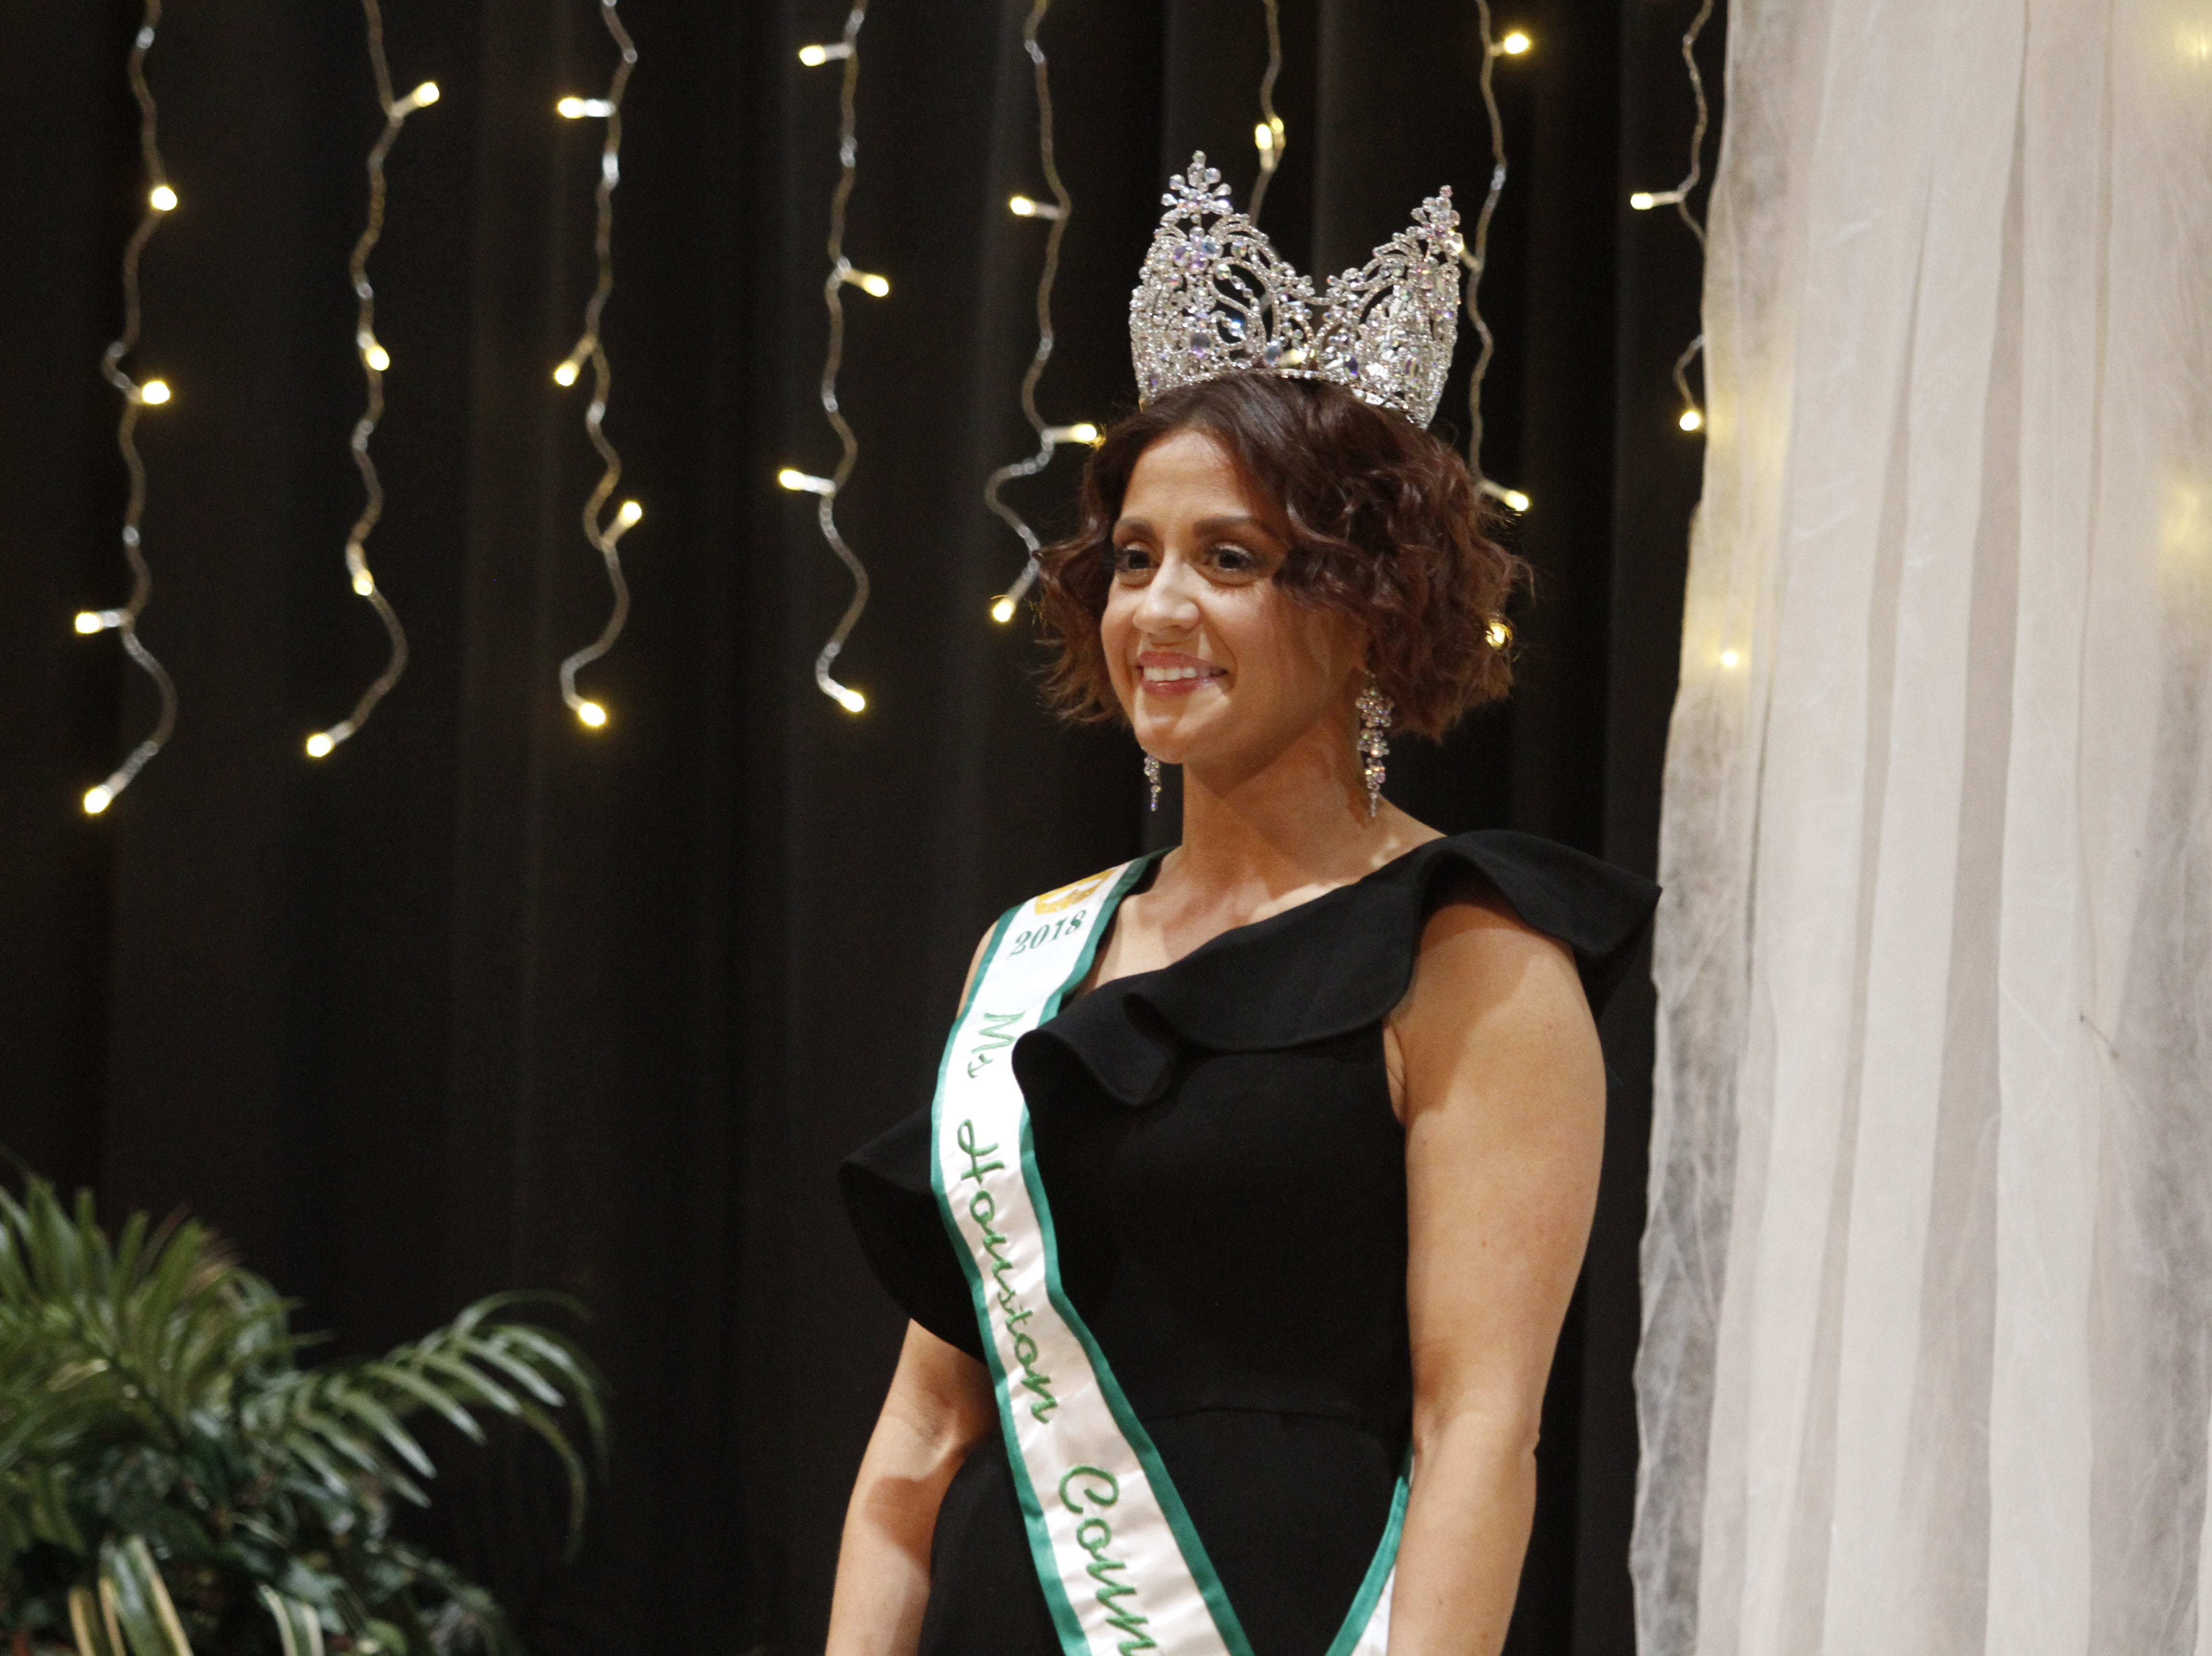 Outgoing Ms. Houston County 2018 Ashley Allsbrooks at the Houston County pageants on Saturday, March 9, 2019.